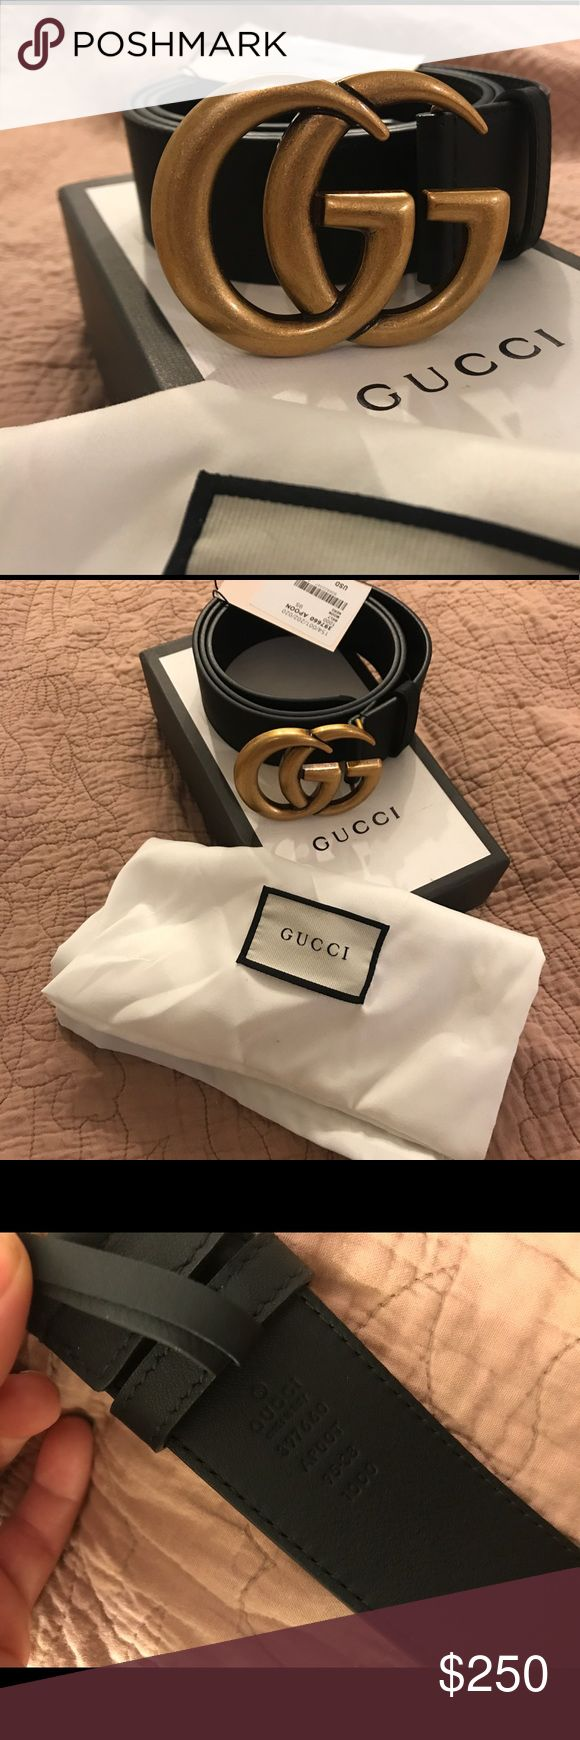 Brand new Gucci belt Comes with tag, dust cover, and box size 95cm Gucci Accessories Belts